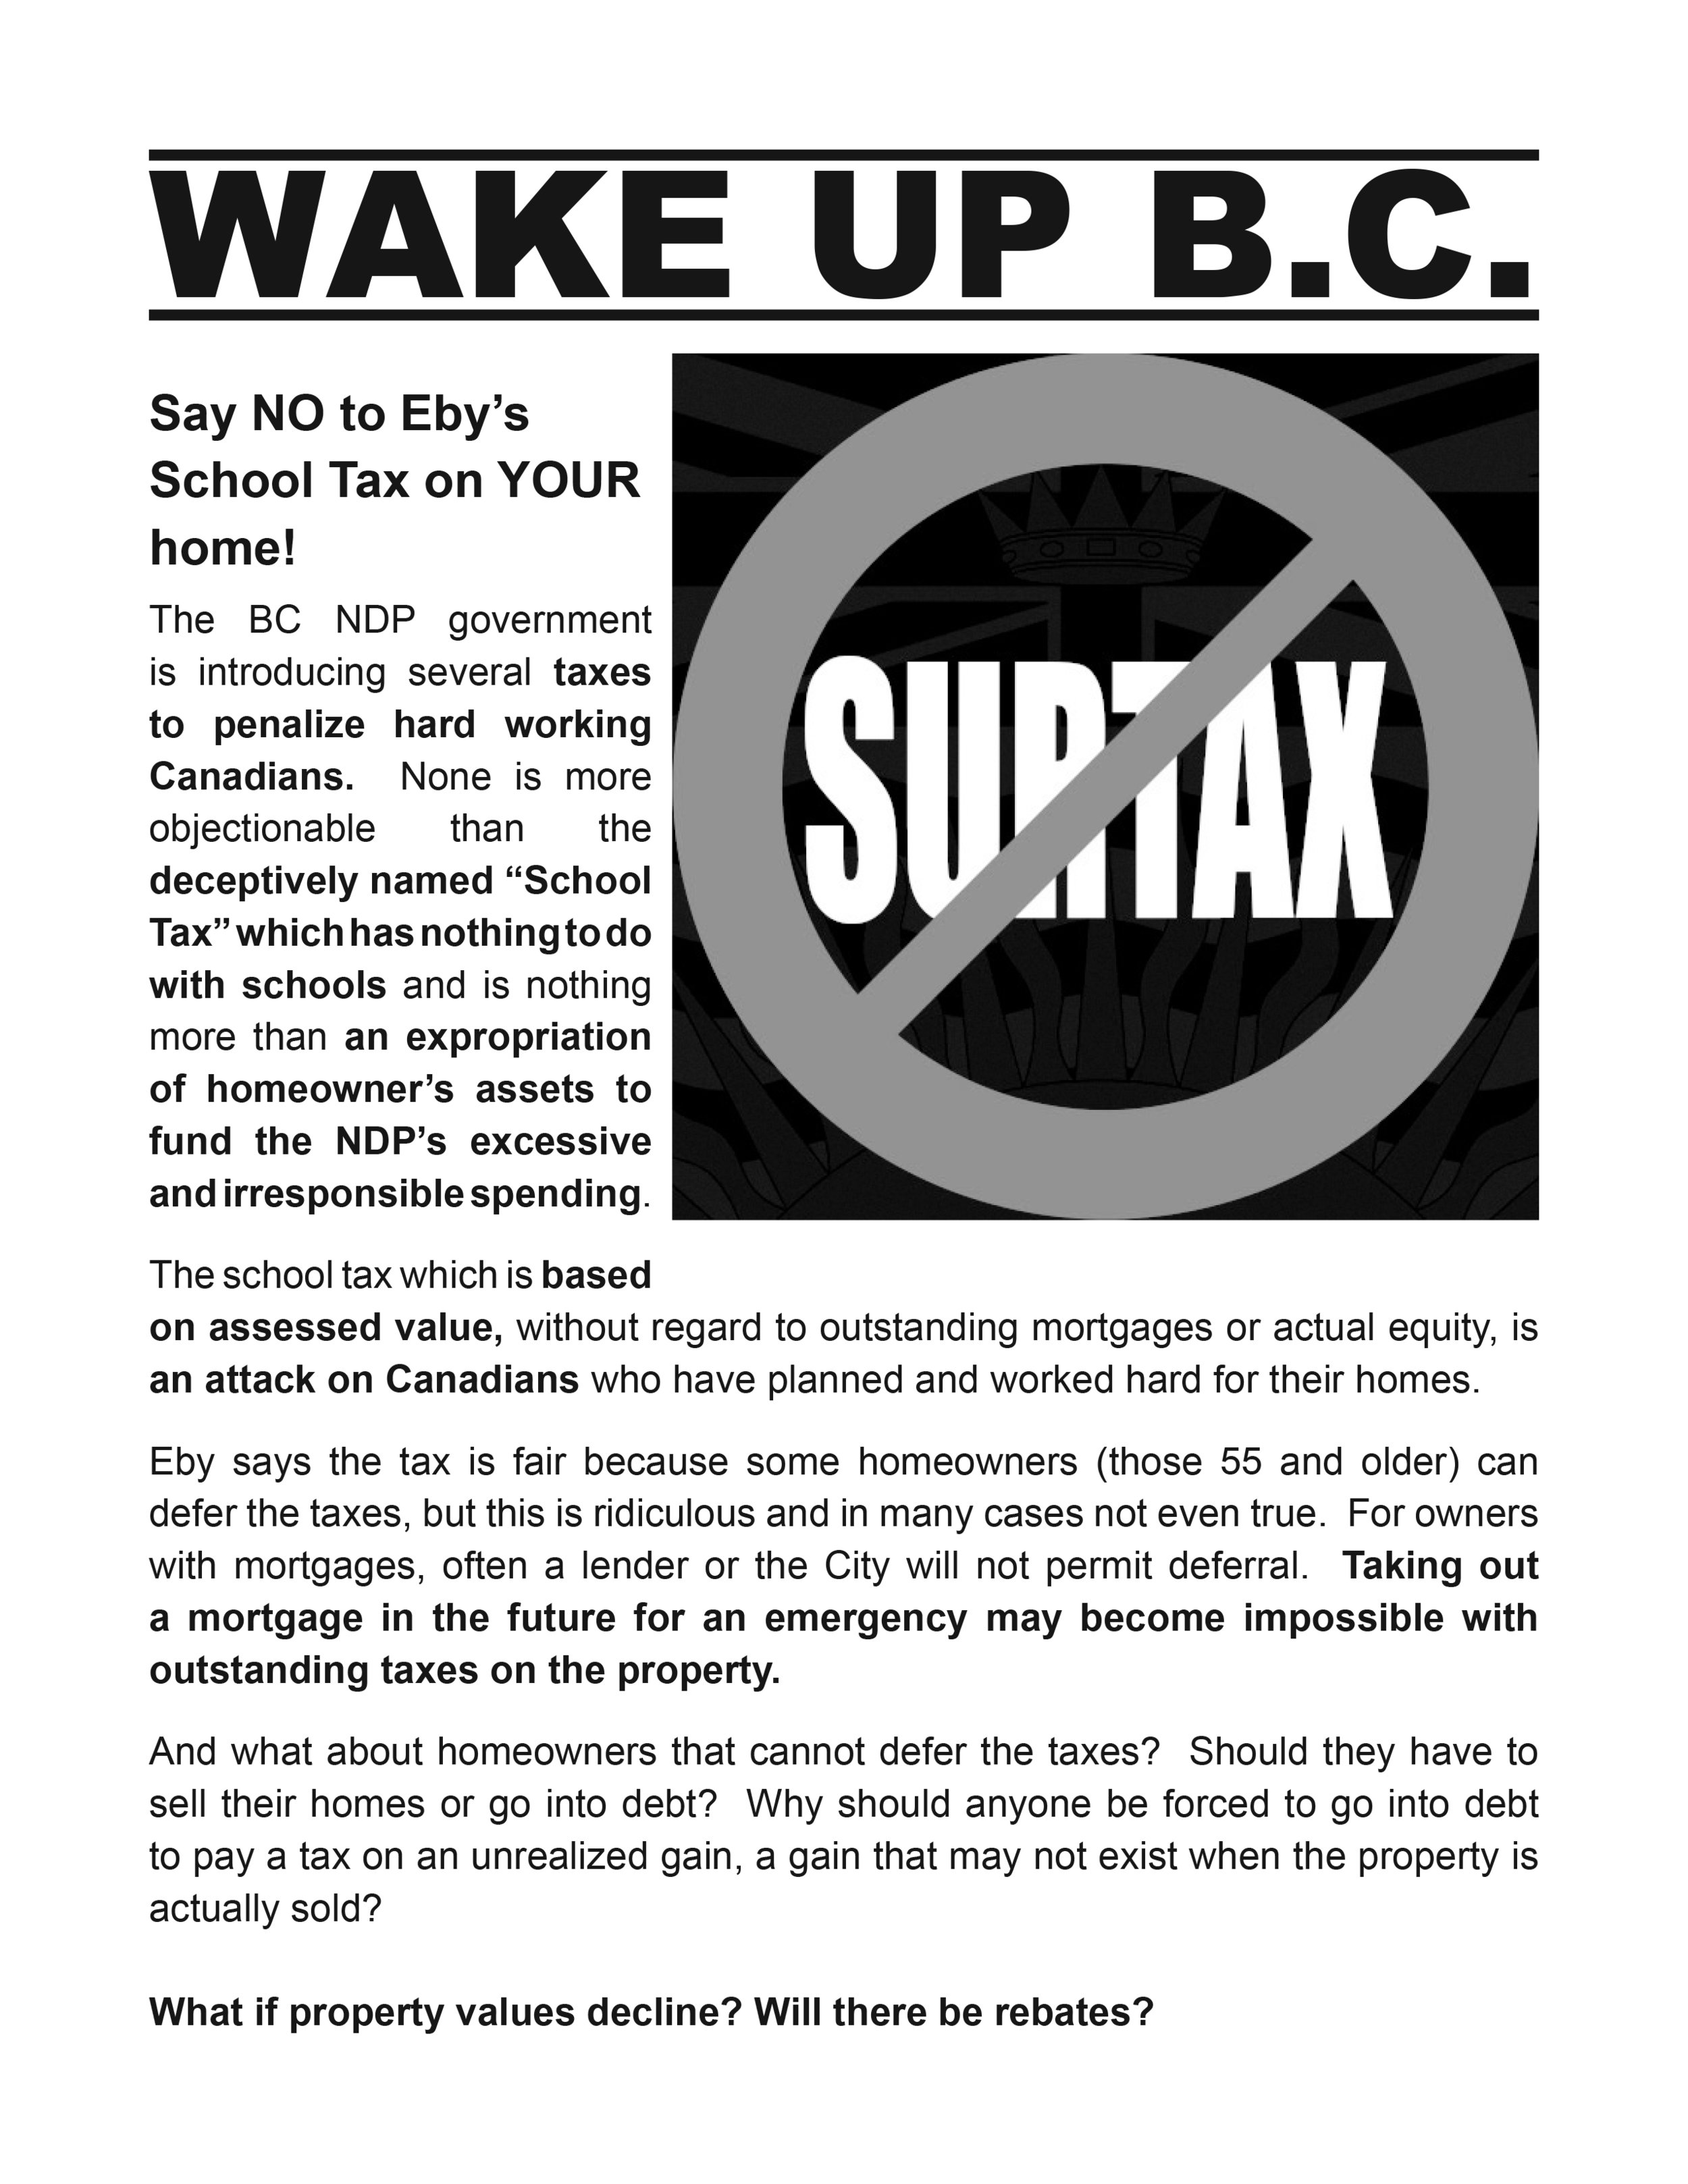 Wake up BC flyer May 1st Protest Rally Information piece Updated-1.jpg